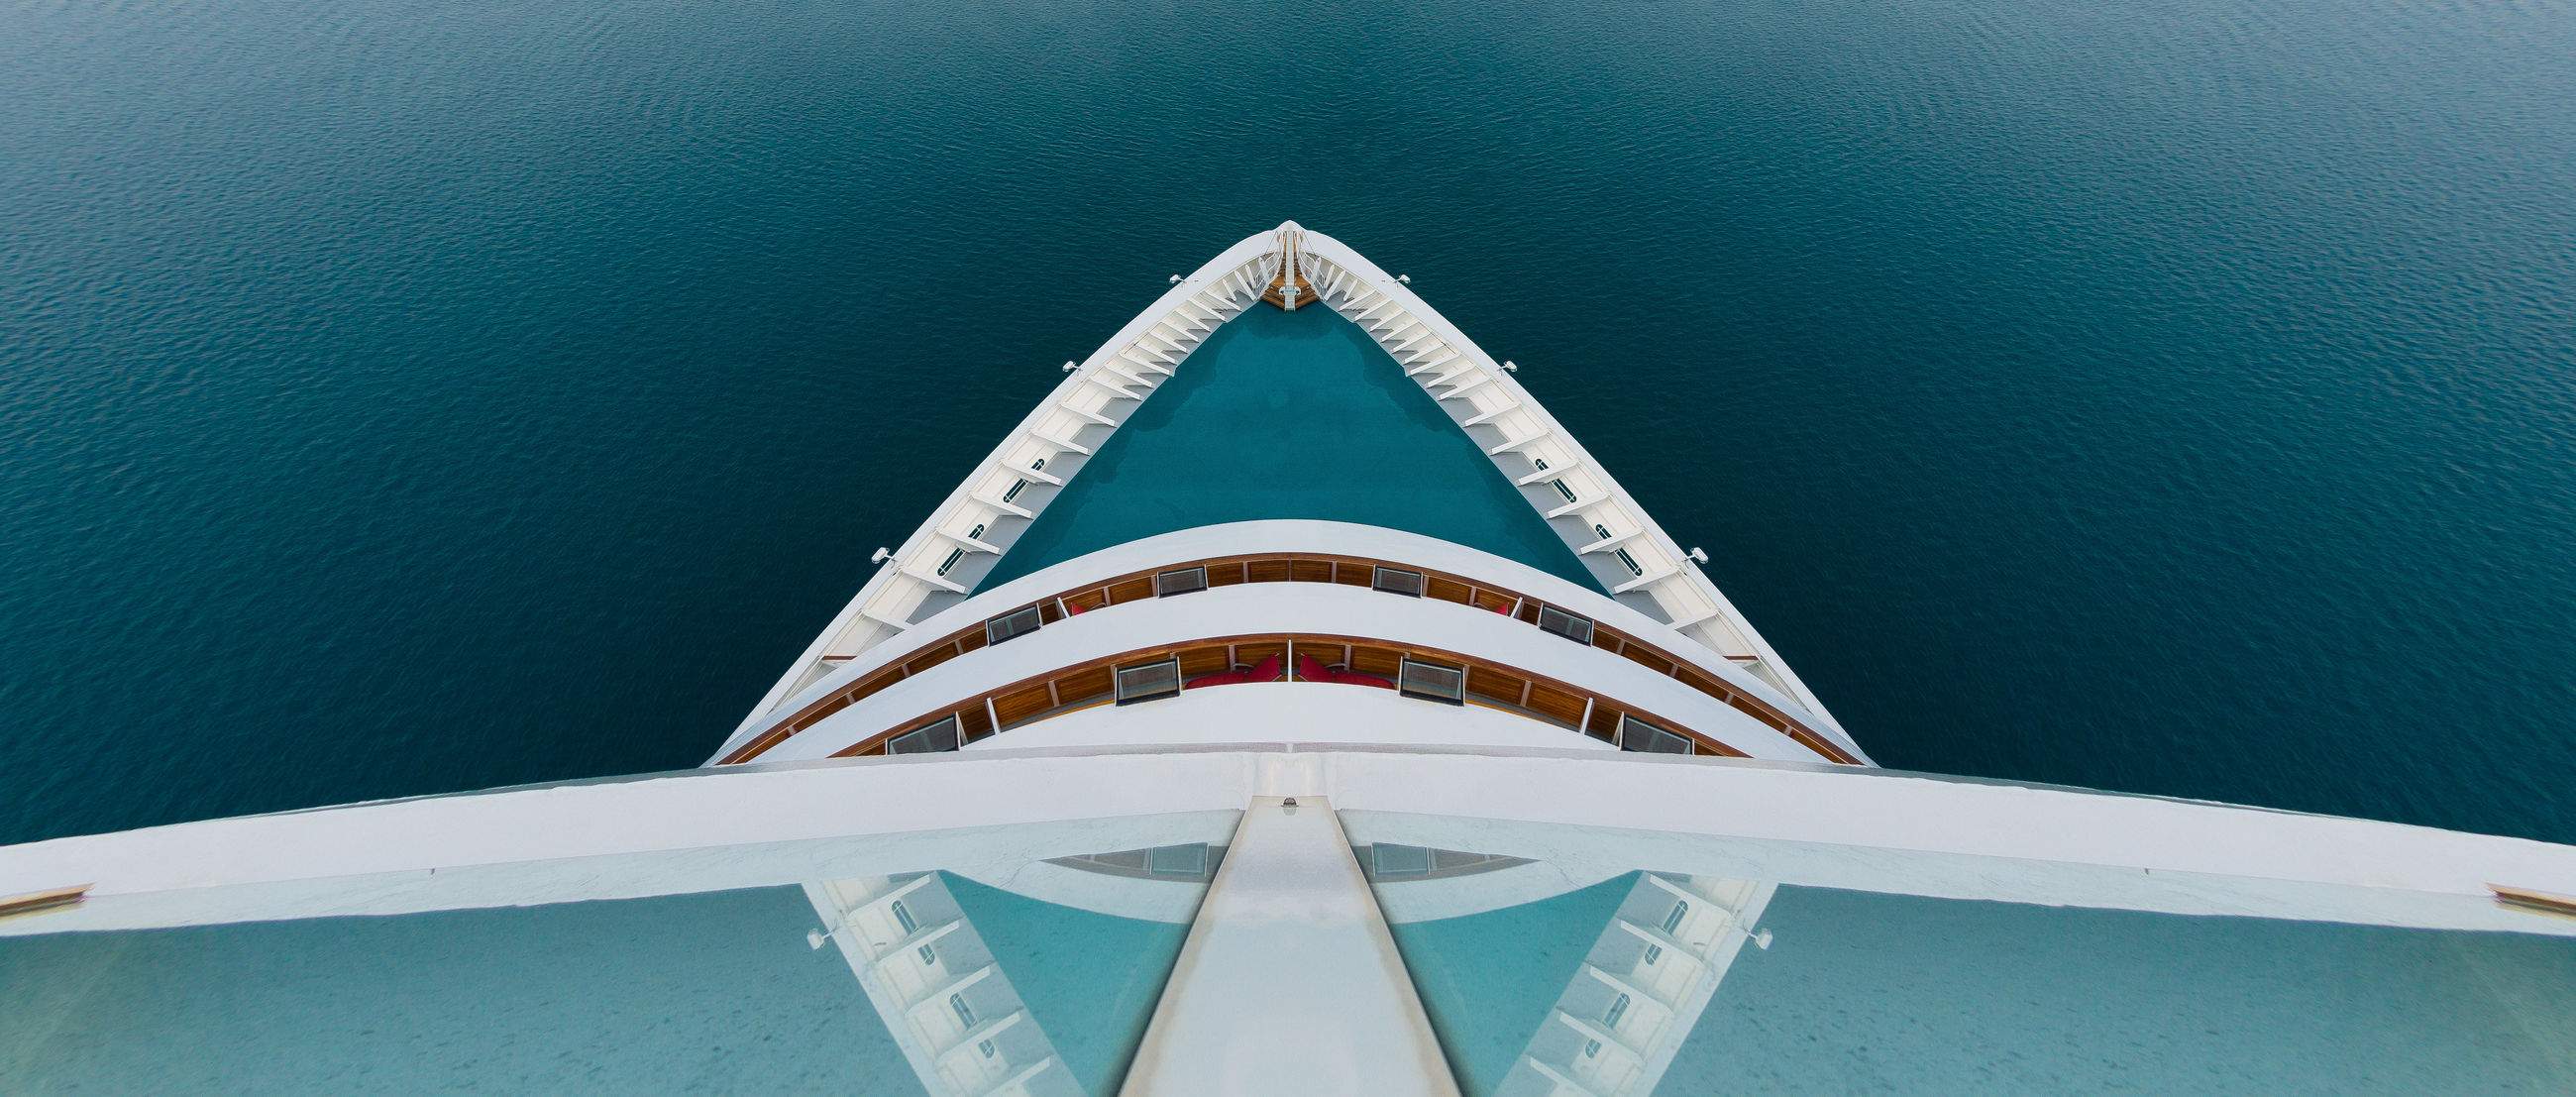 water, sea, nautical vessel, transportation, no people, day, travel, mode of transportation, nature, high angle view, sailing, outdoors, scenics - nature, travel destinations, luxury, architecture, sunlight, white color, blue, turquoise colored, yacht